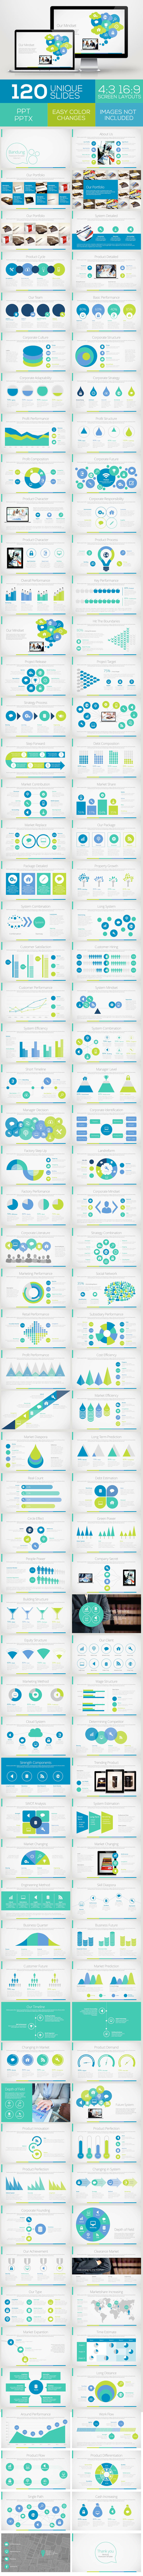 Bandung Powerpoint Template Volume 3 - Business Powerpoint Templates